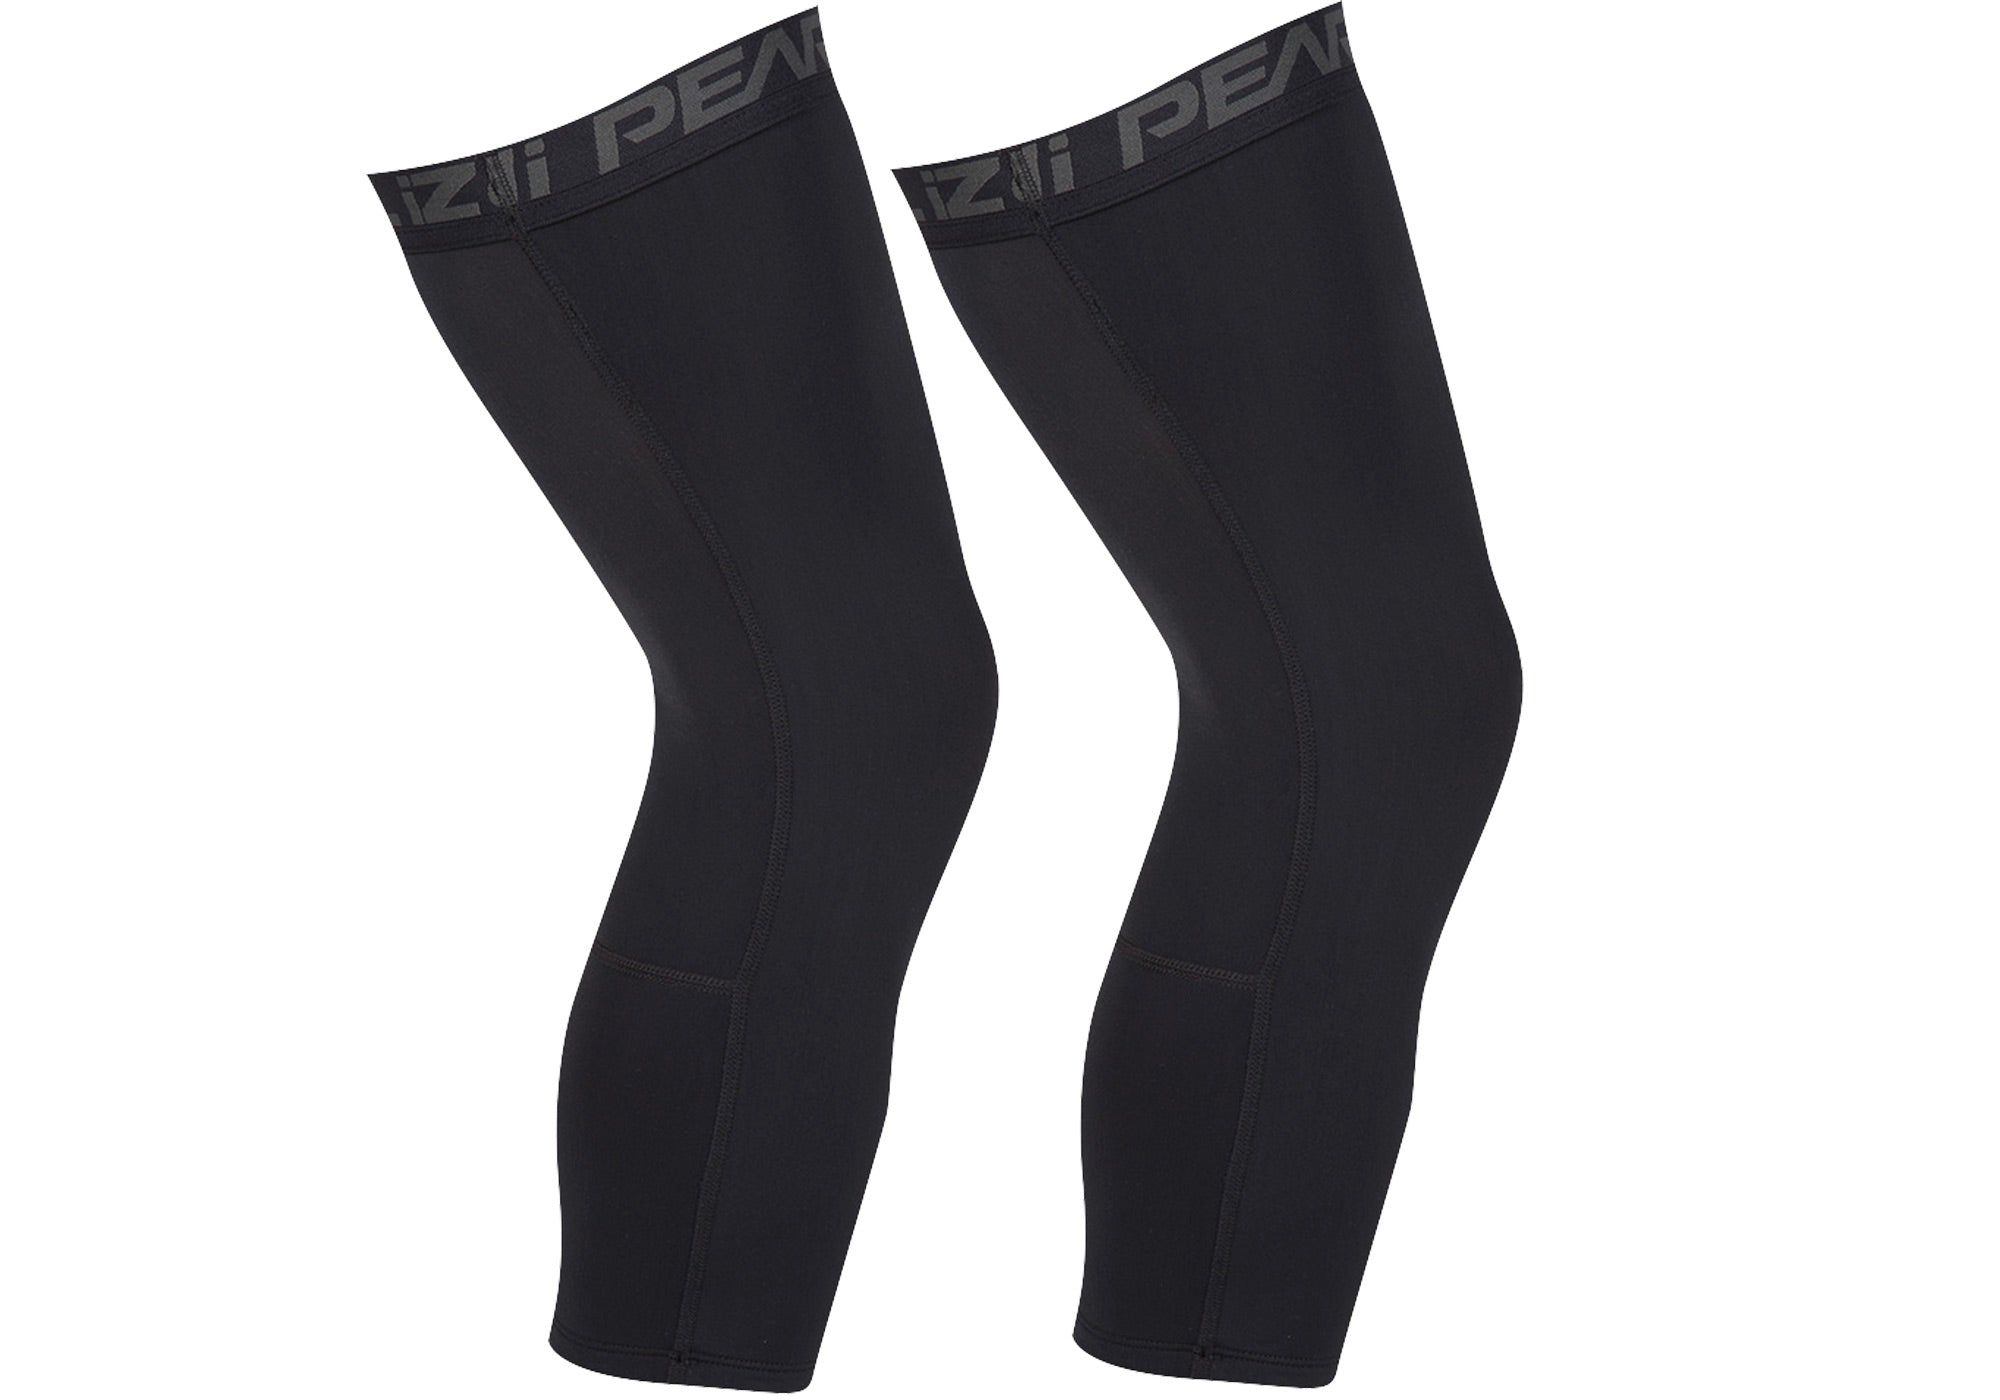 Pearl Izumi Unisex Elite Thermal Knee Warmers buy online Woolys Wheels Sydney